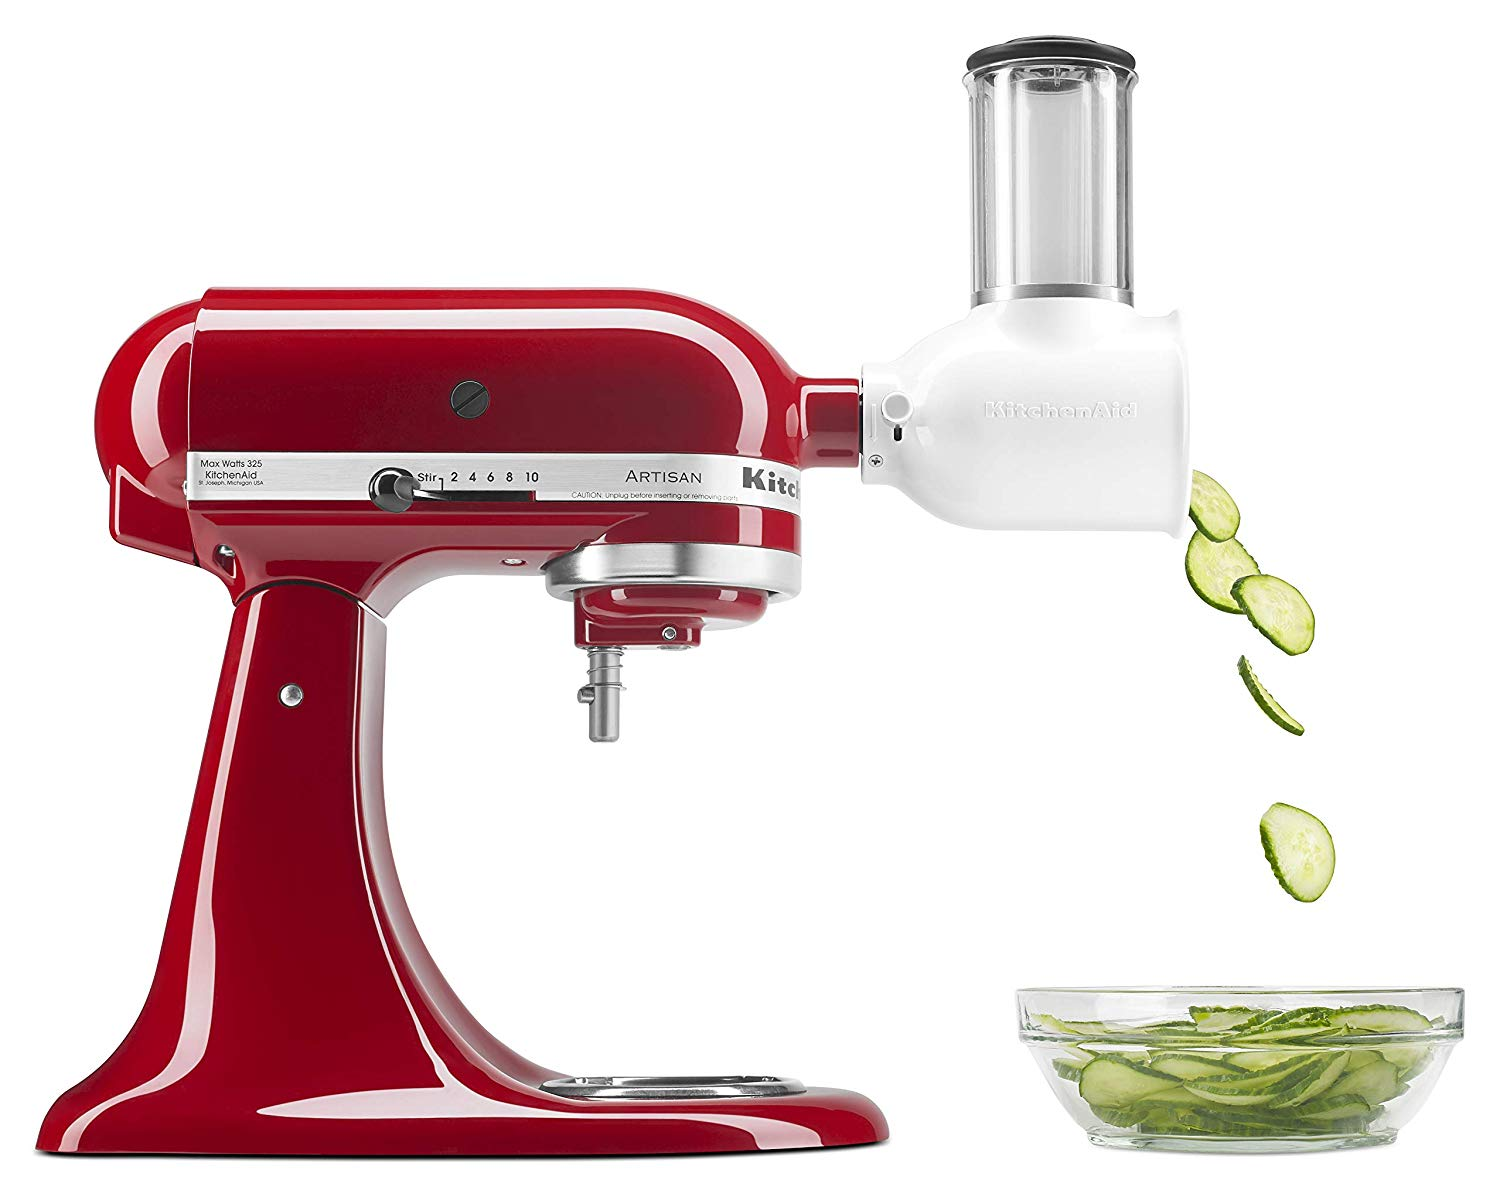 If you have a Kitchenaid mixer, find out the best Kitchenaid Mixer Attachments. Make life easier with these handy attachments you need to have!